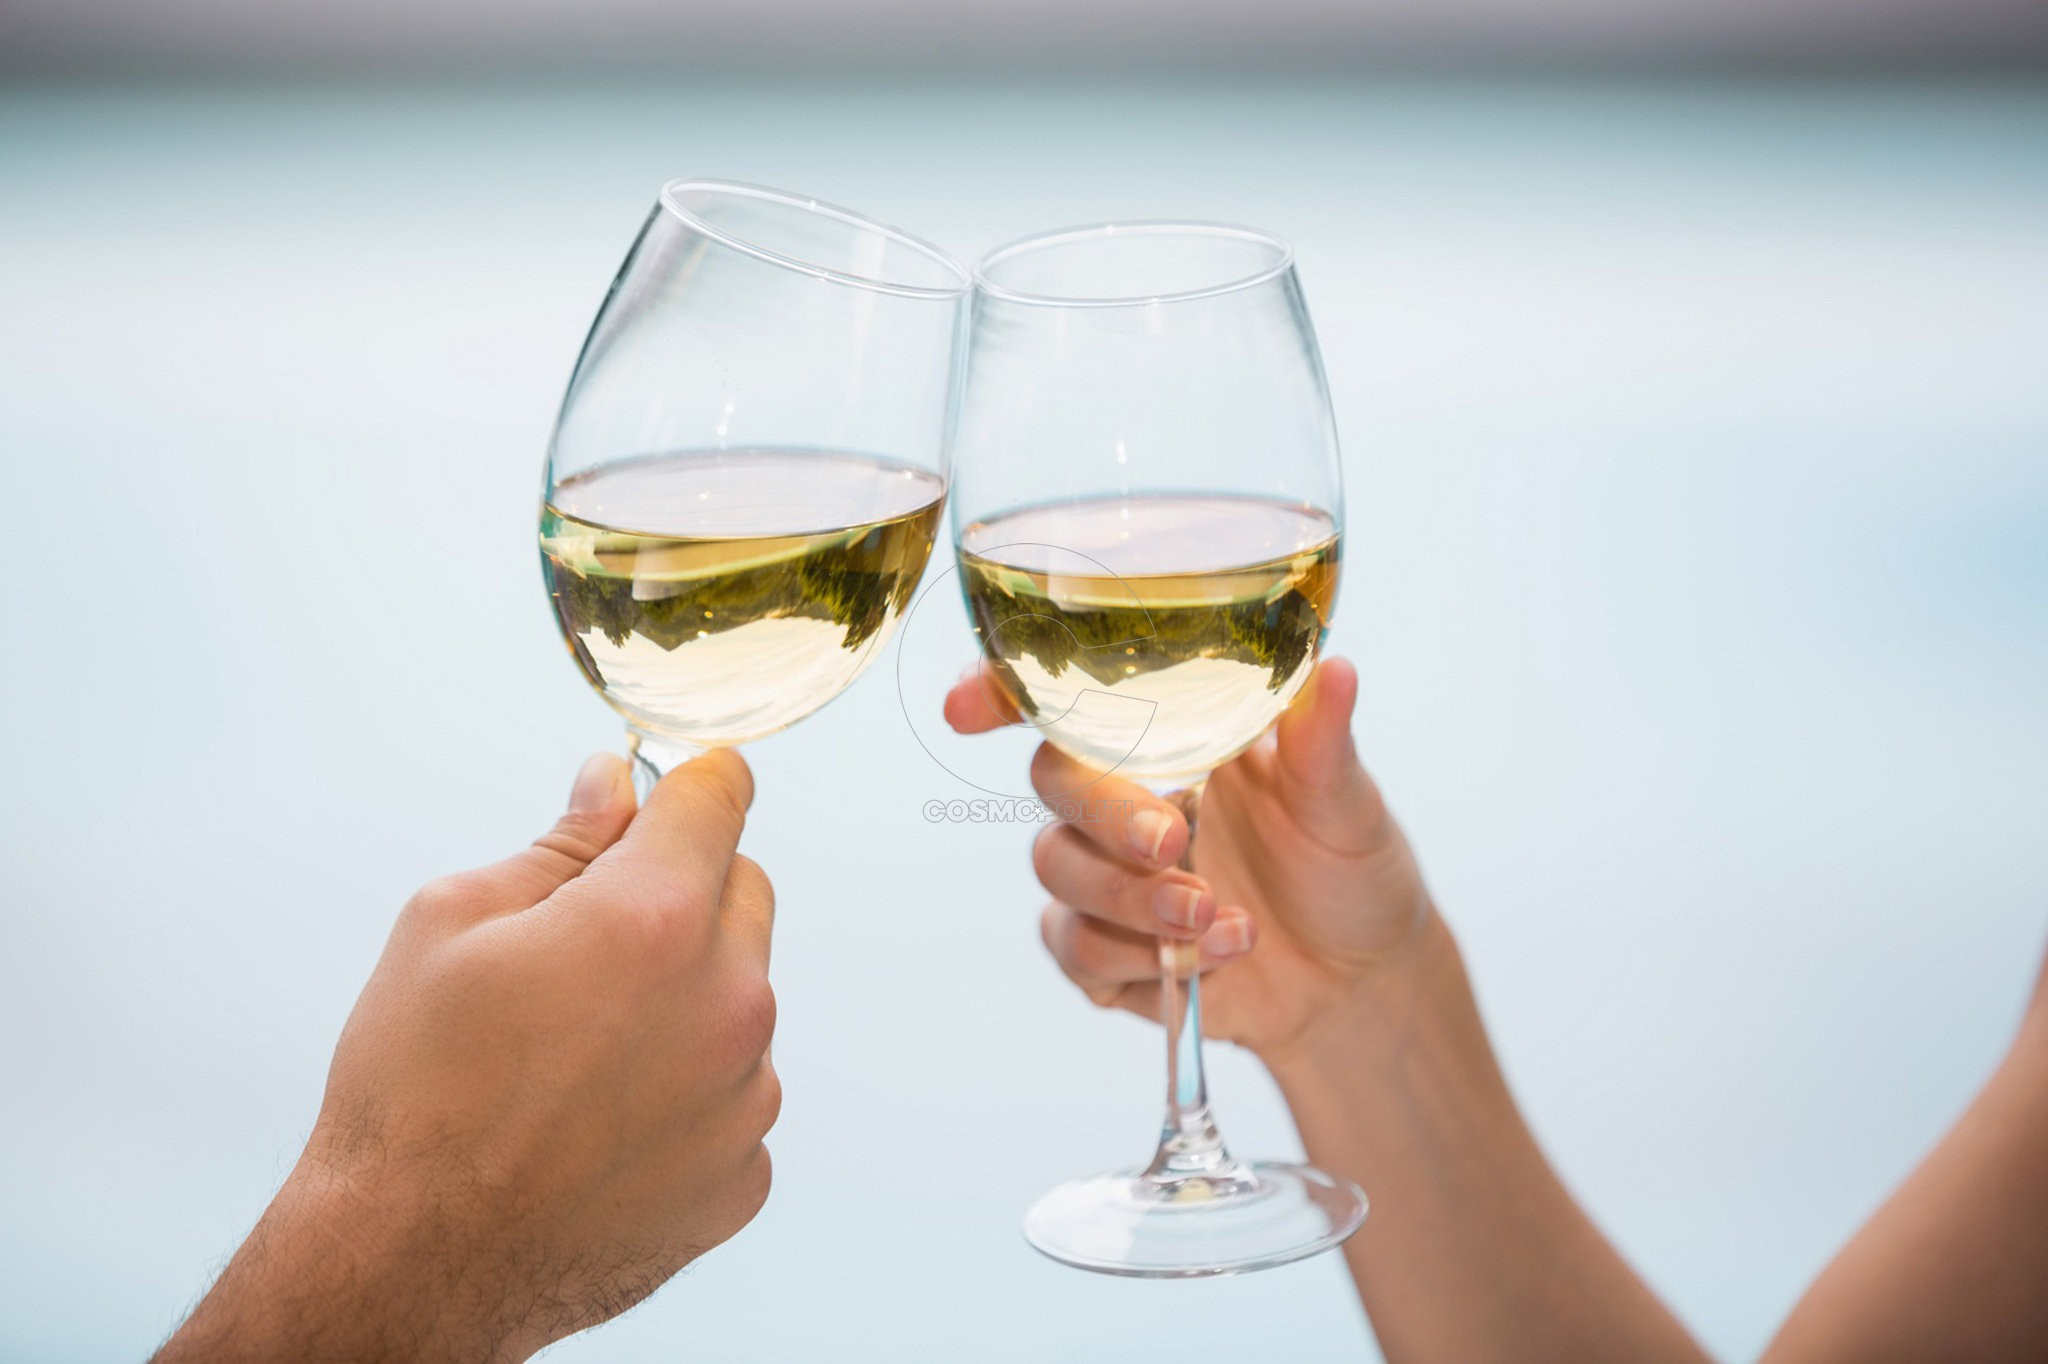 is-drinking-wine-on-secret-to-a-happy-marriage-05b0d08e493a115d